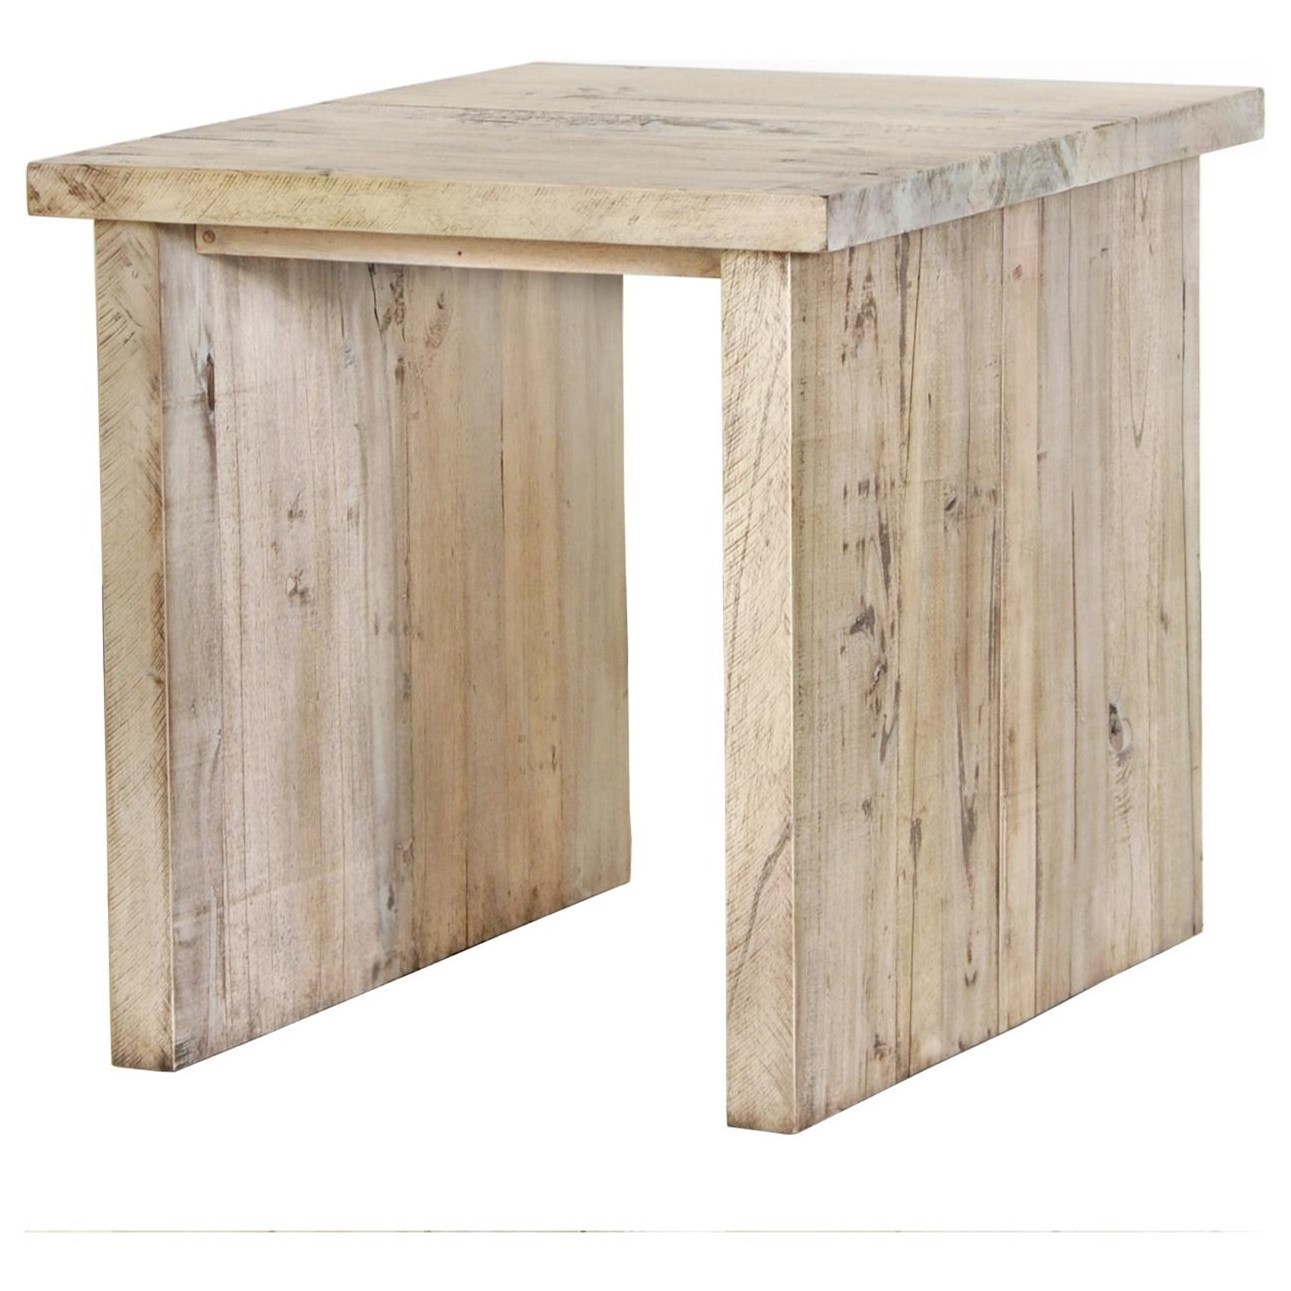 Renewal End Table by Napa Furniture Designs at HomeWorld Furniture